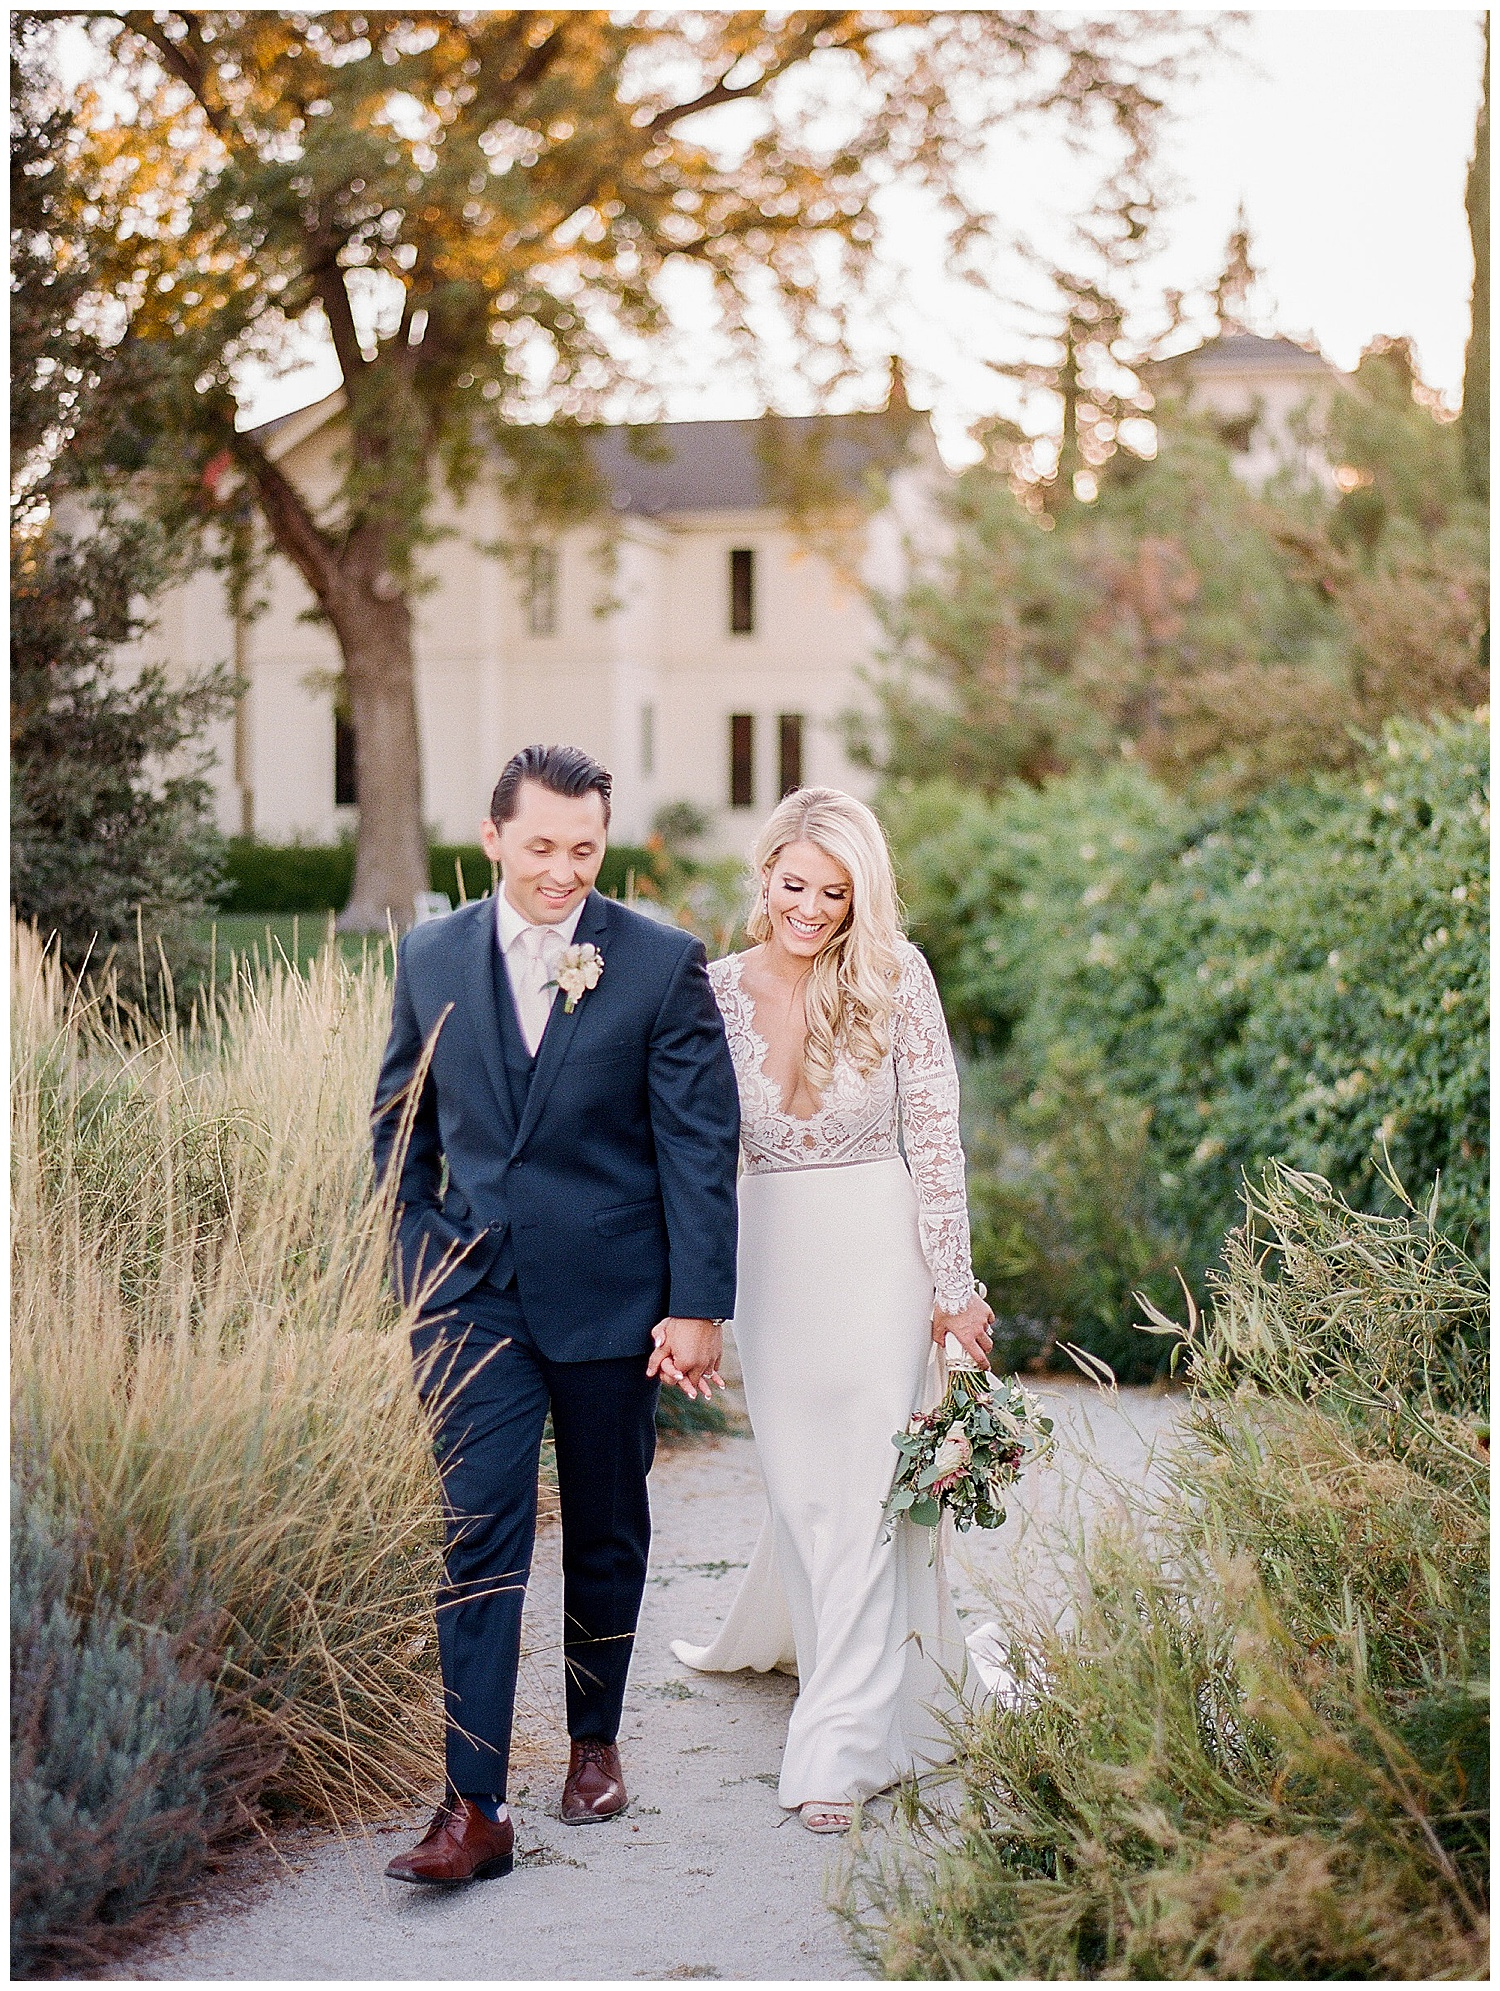 Janine_Licare_Photography_San_Francisco_Wedding_Photographer_Carneros_Tyge_Williams_Sonoma_Napa_0256.jpg